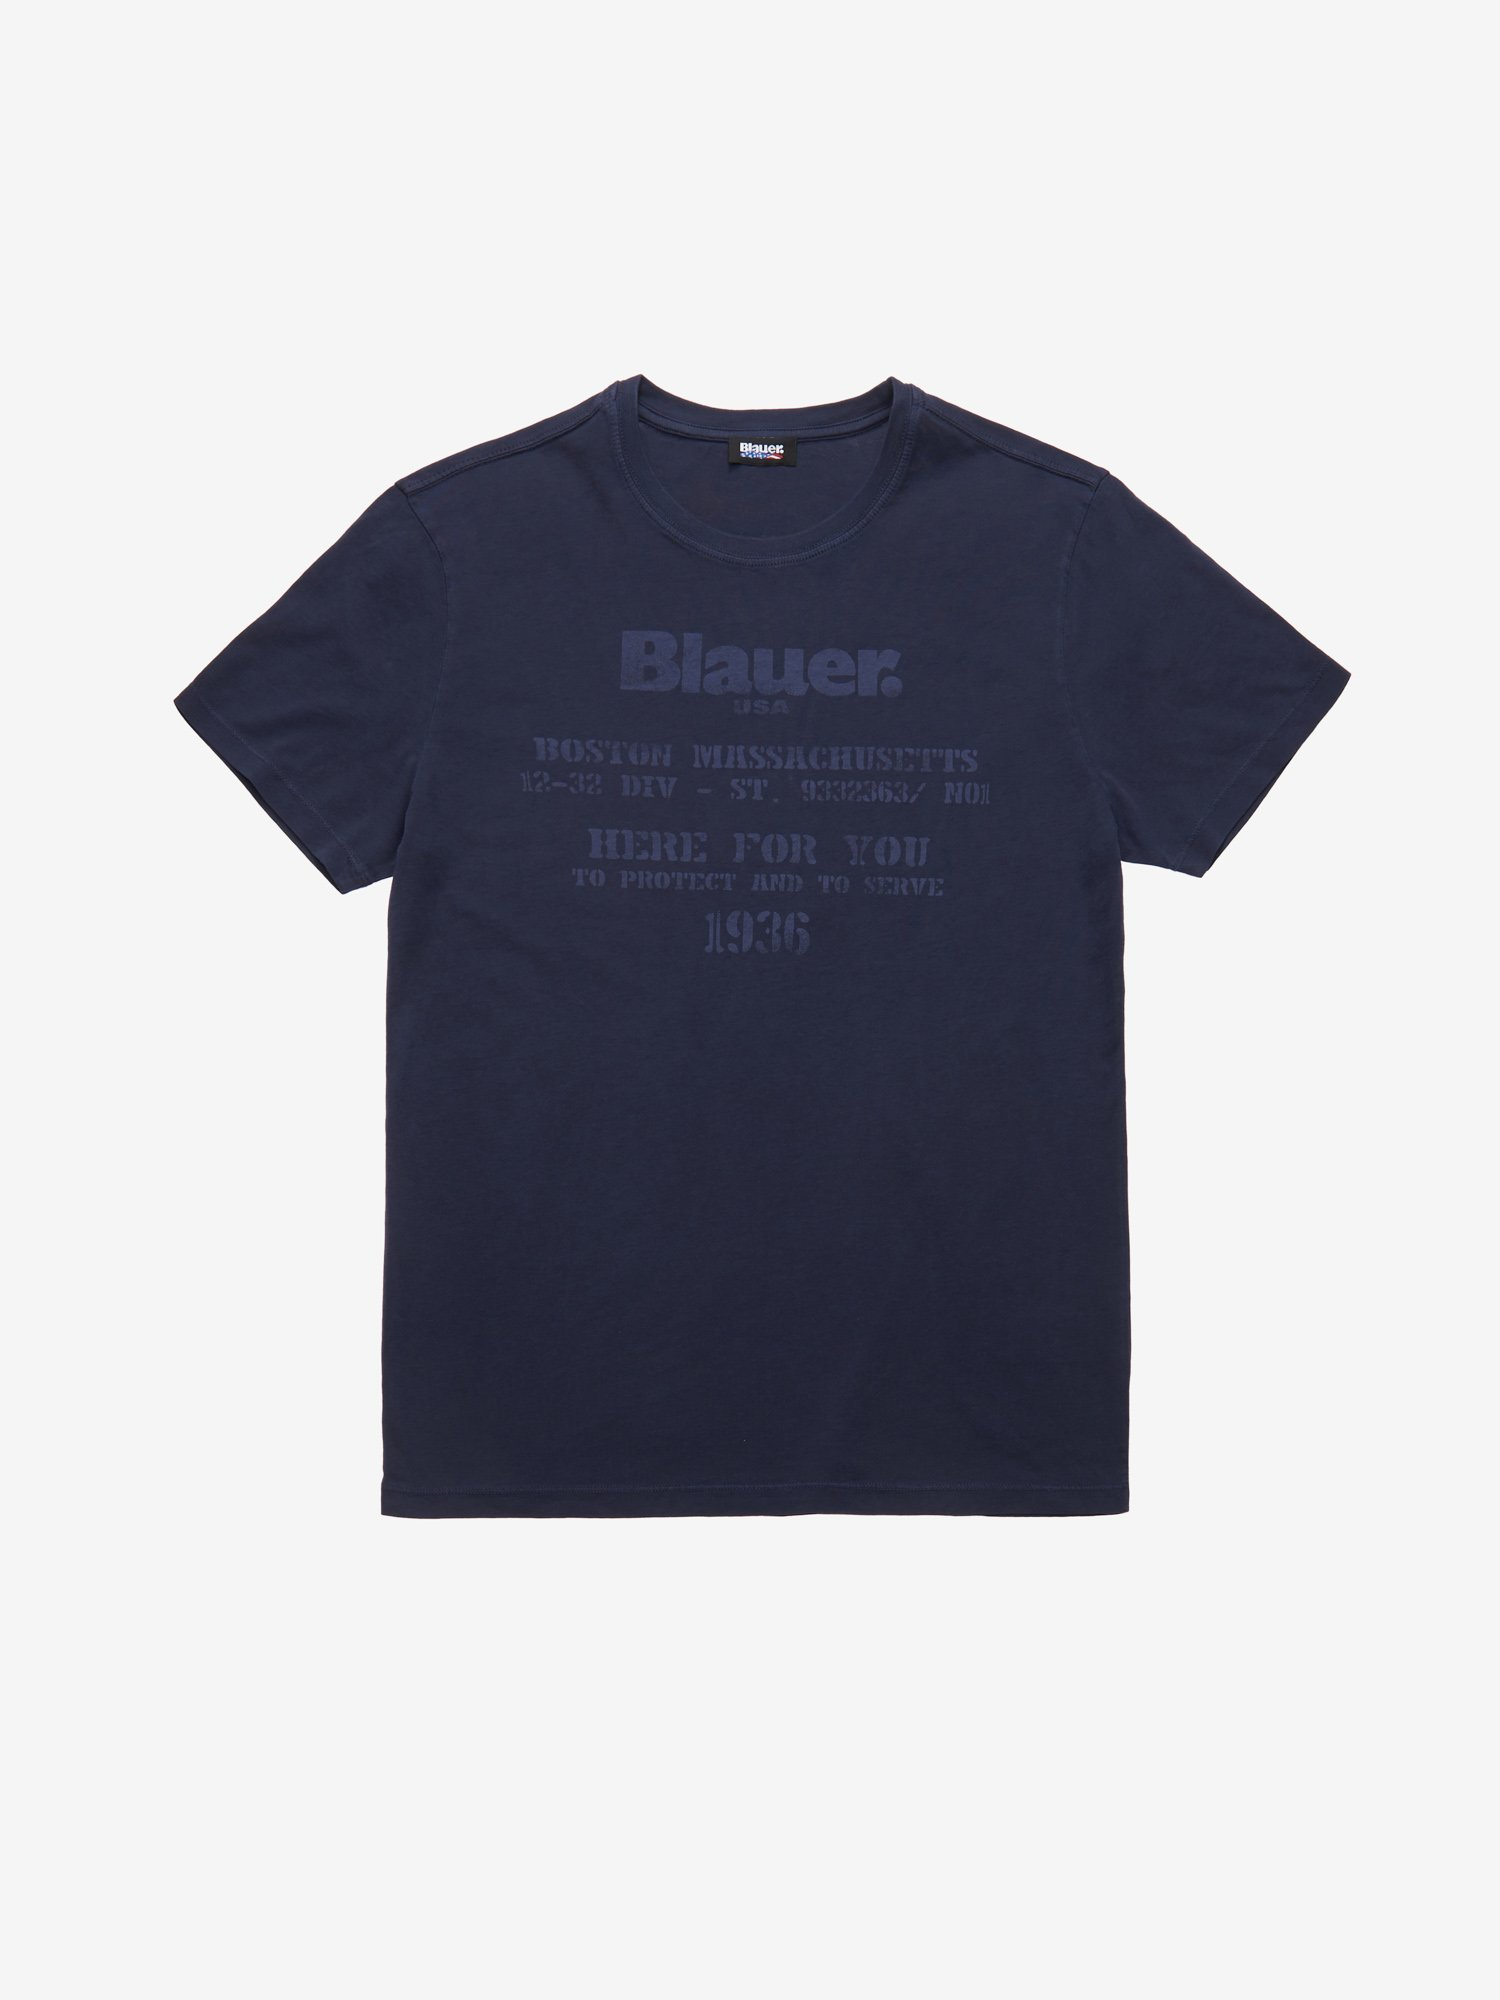 PROTECT AND SERVE T-SHIRT - Blauer